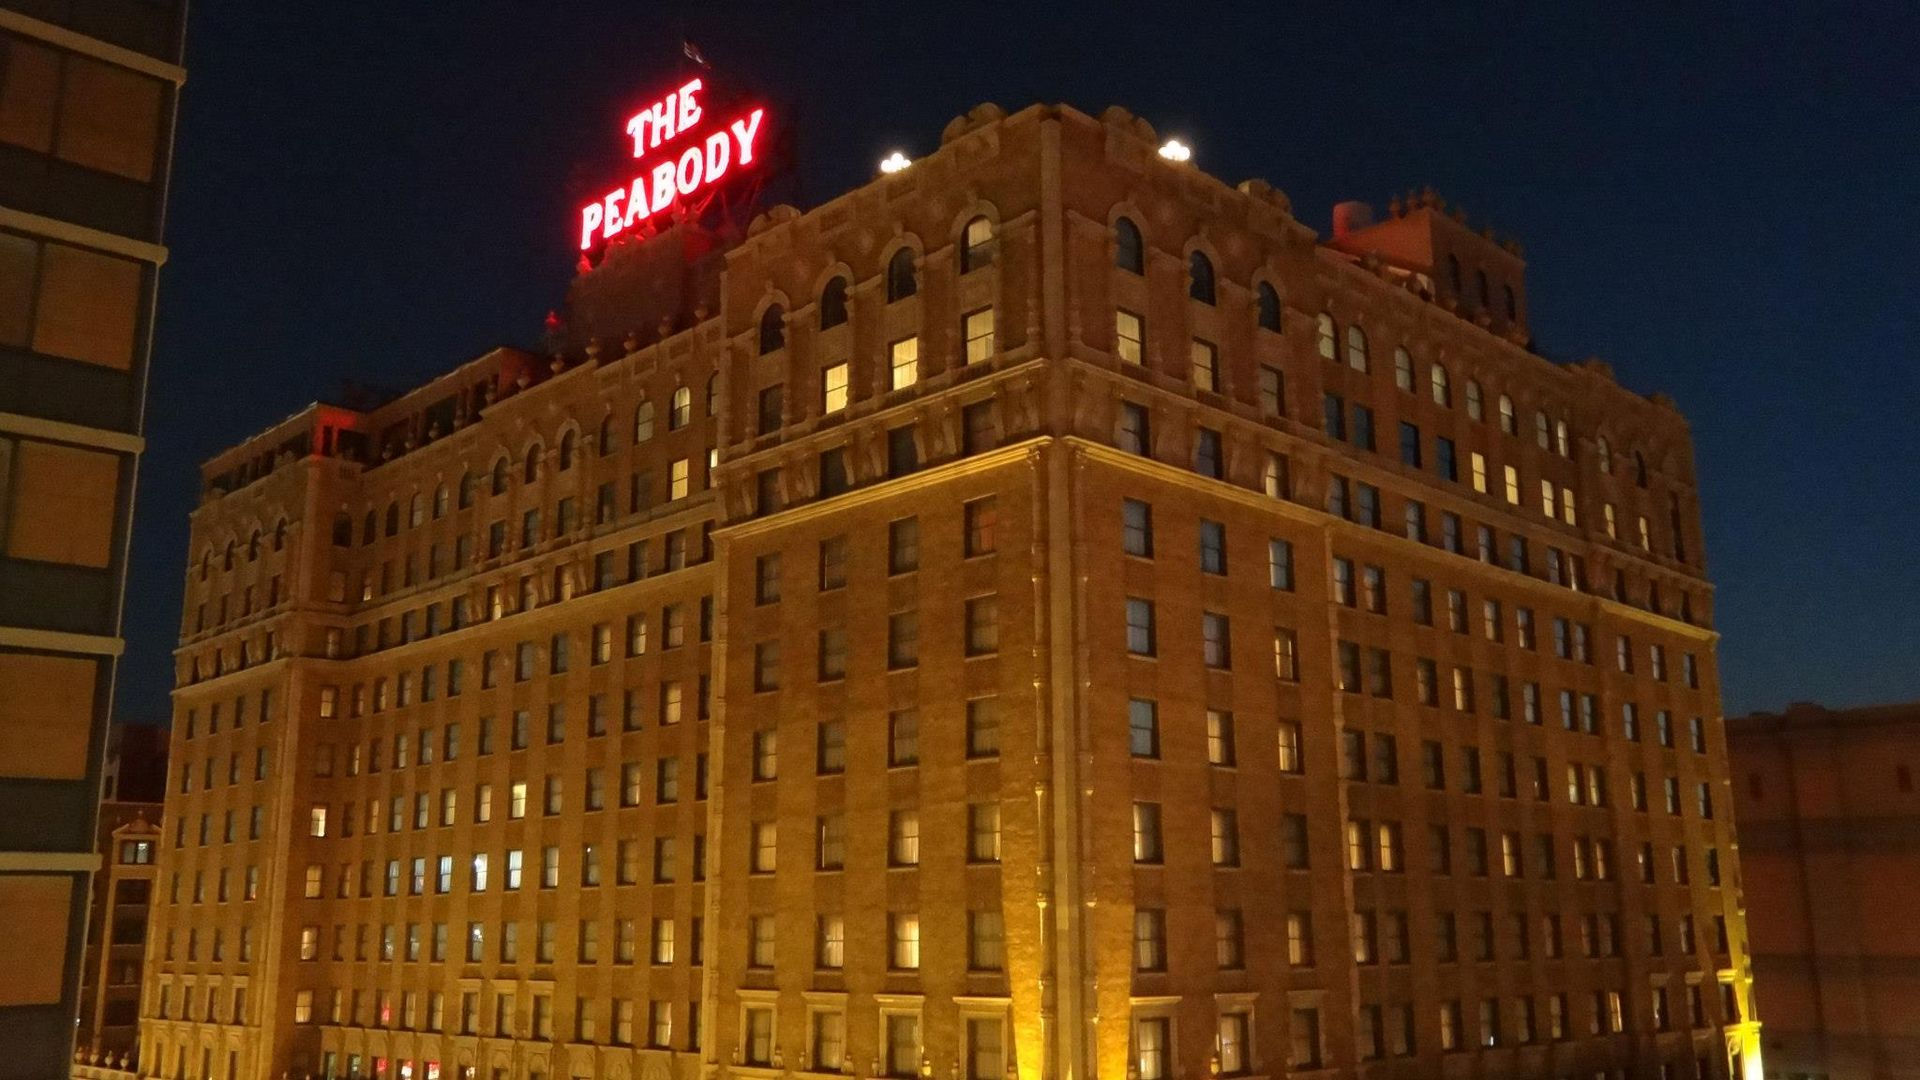 Hotels In Peabody Mabachusetts Area